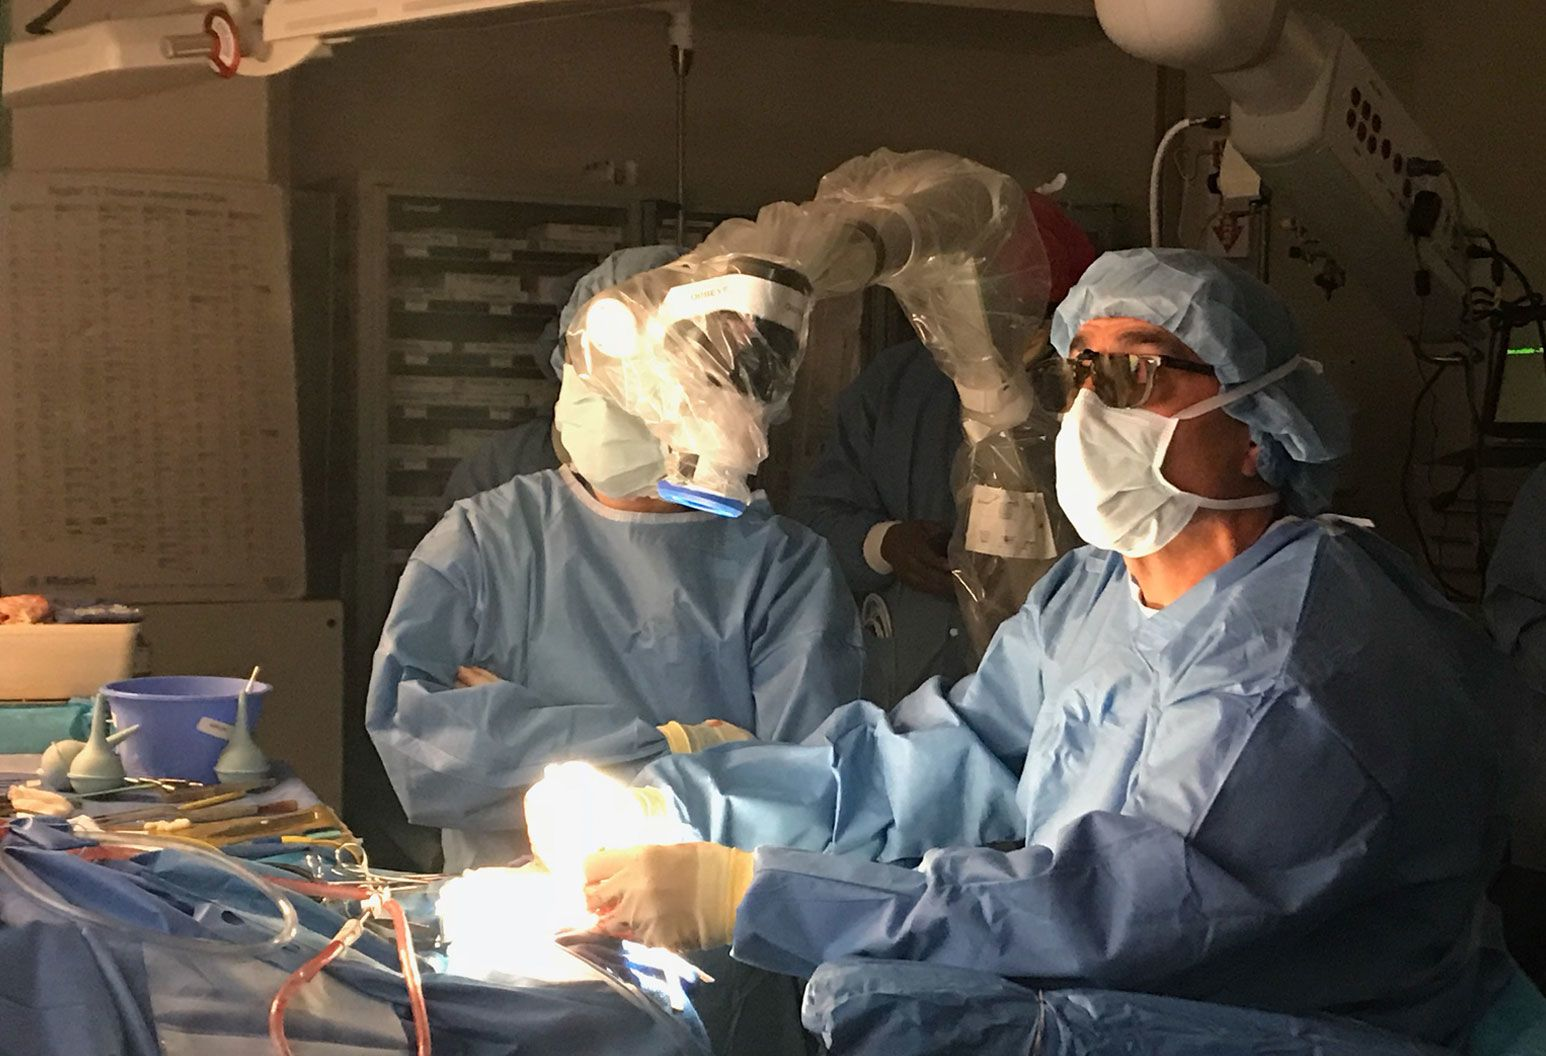 Group of surgeons in the operating room, wearing surgical gown, masks, and head coverings, are performing surgery